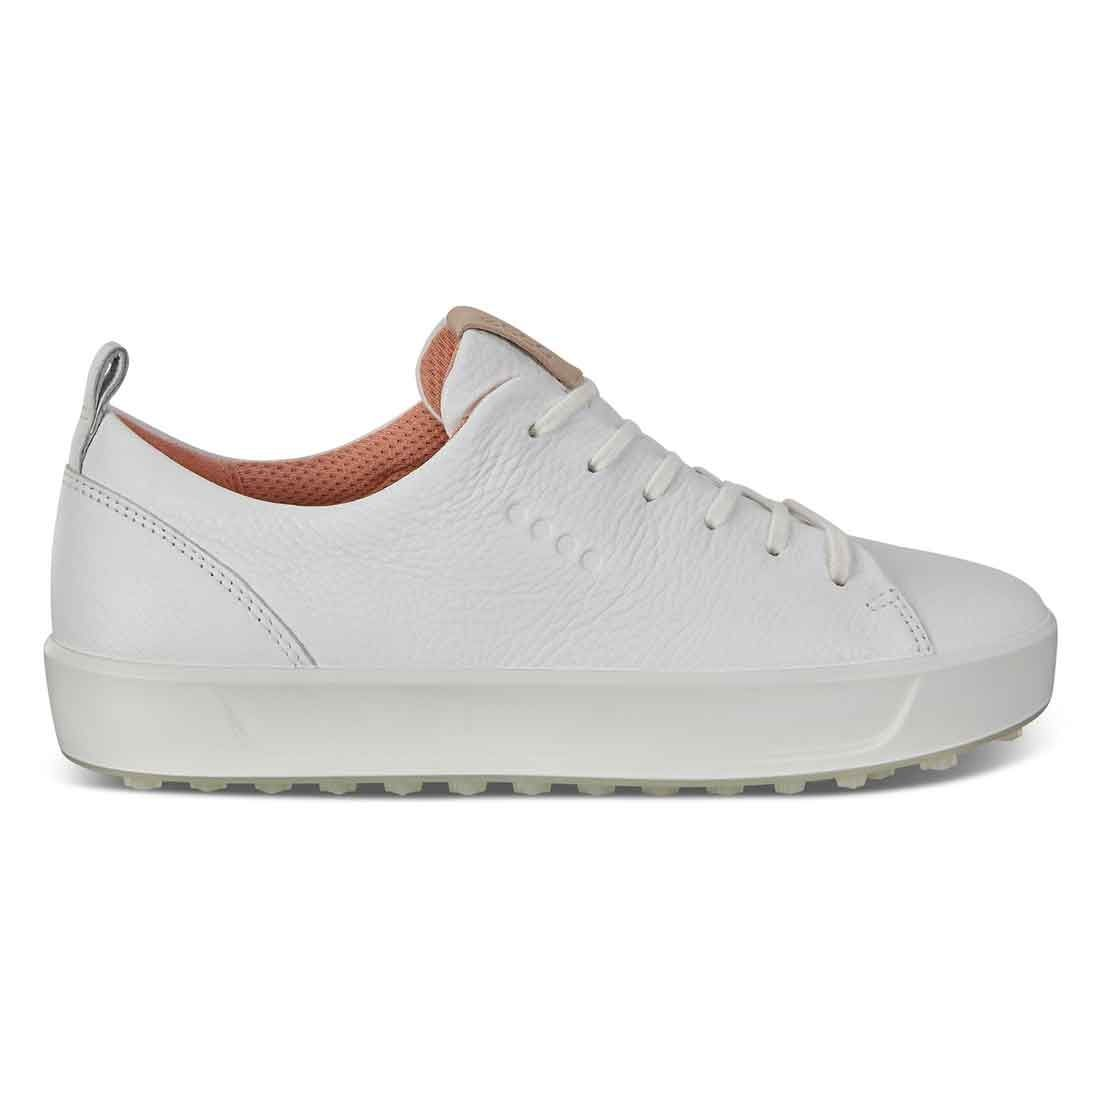 Golf Soft Low Golf Shoes Bright White